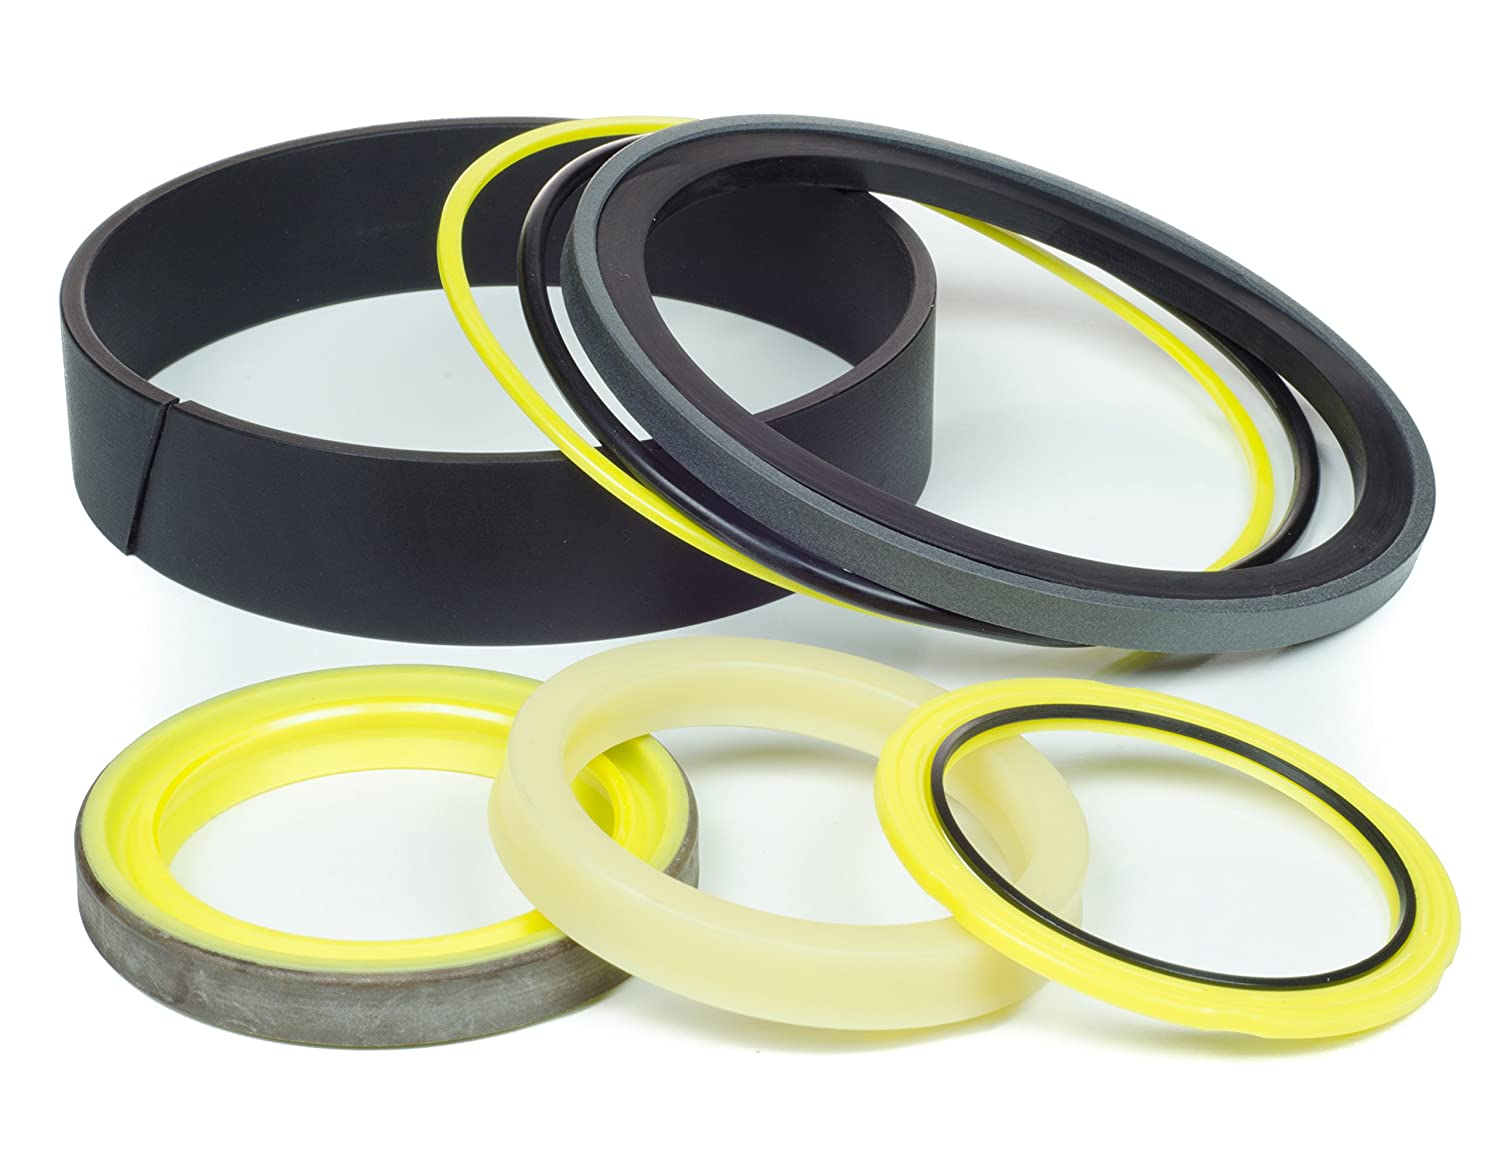 CAT Caterpillar 7X2768 Aftermarket Hydraulic Cylinder Seal Kit by Kit King USA CAT 7X2768